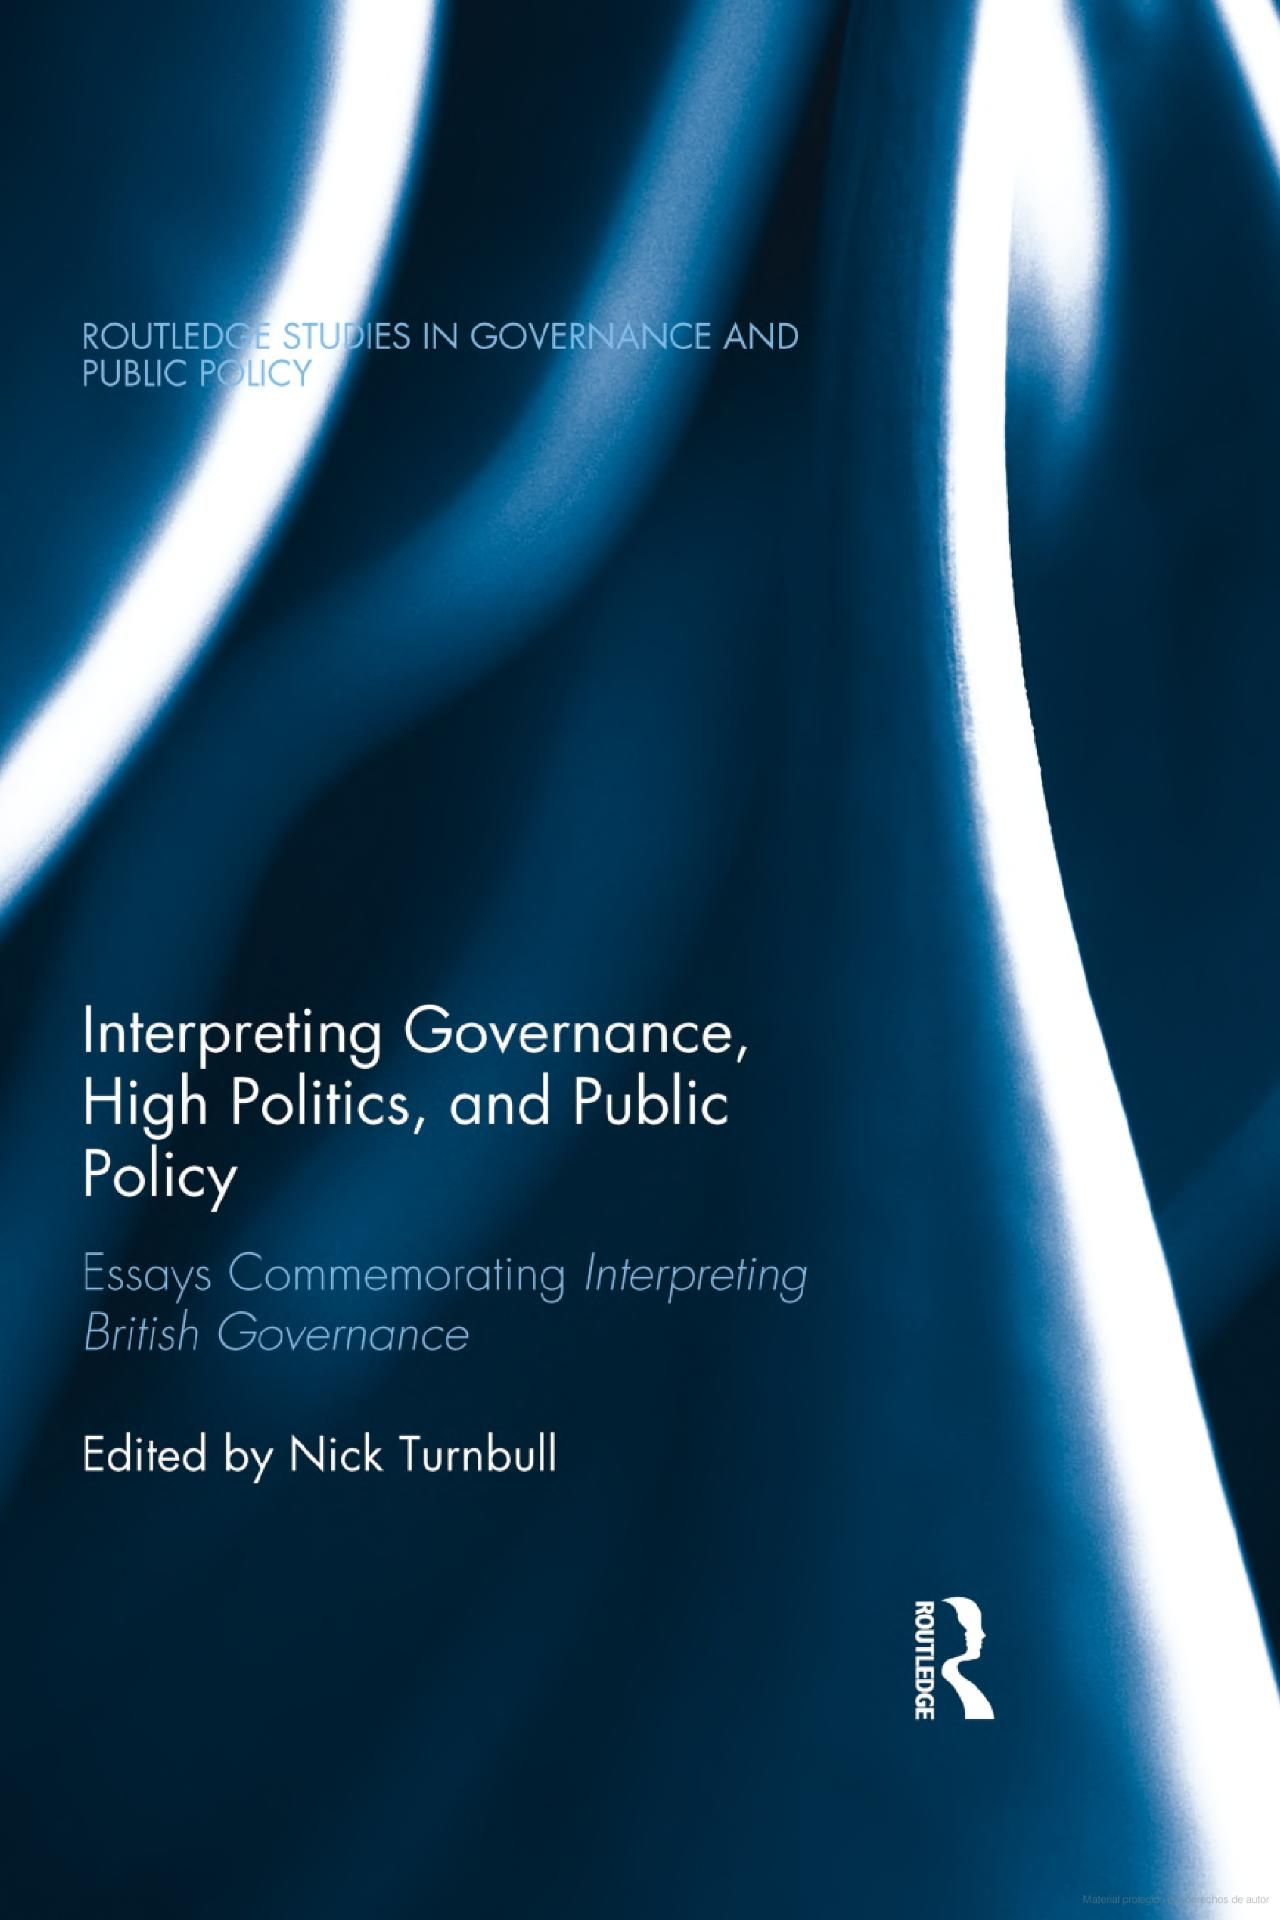 interpreting governance high politics and public policy essays interpreting governance high politics and public policy essays commemorating interpreting british governance edited